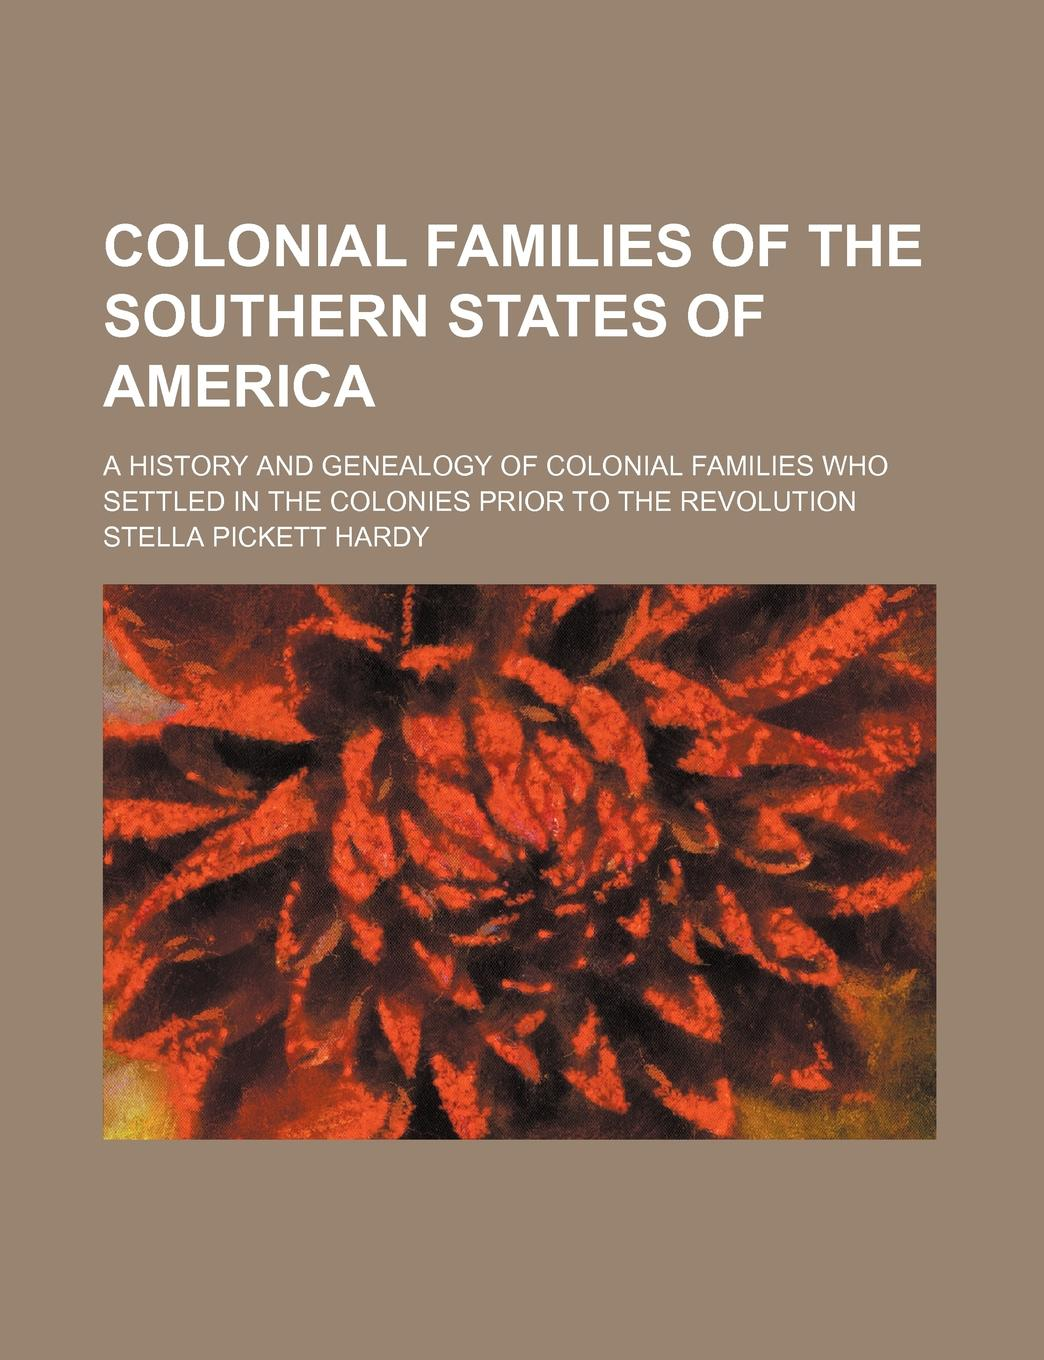 Stella Pickett Hardy Colonial Families of the Southern States of America; A History and Genealogy of Colonial Families Who Settled in the Colonies Prior to the Revolution кондиционер д белья vernel свежий бриз 1 82л page 6 page 4 page 9